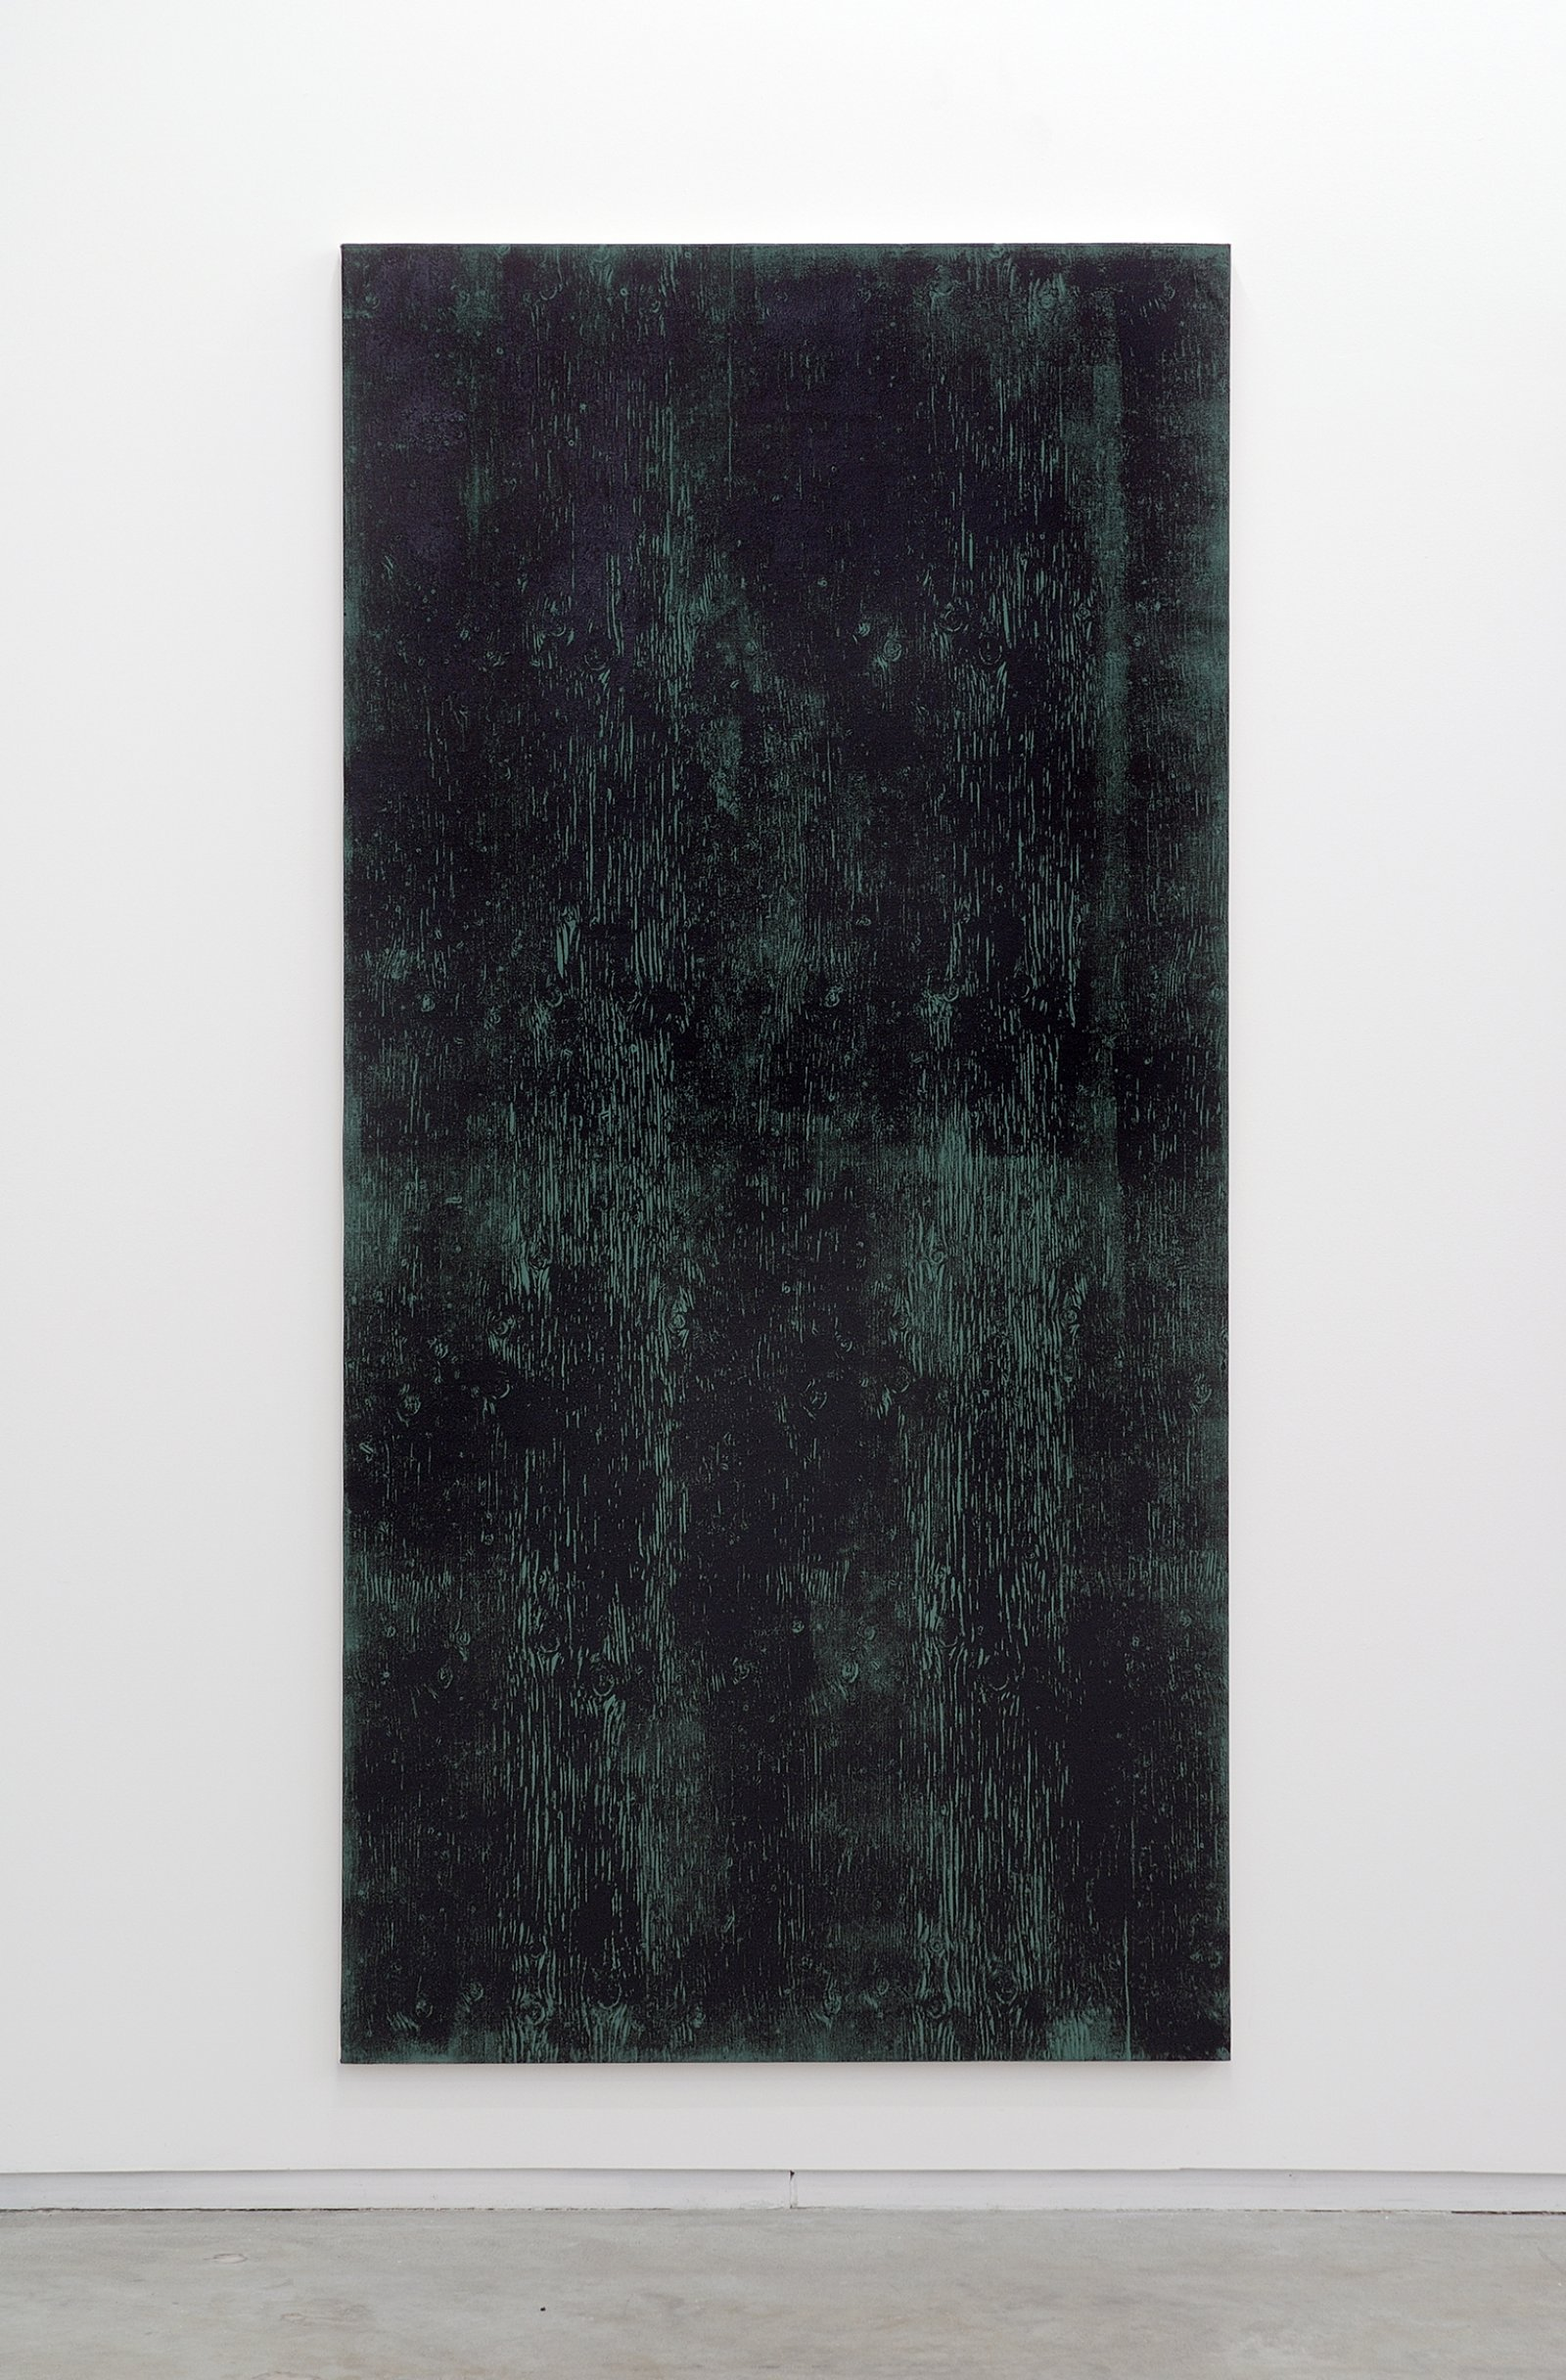 ​Ian Wallace, Untitled (Monoprint with Green), 1990, acrylic on canvas, 90 x 20 in. (229 x 51 cm) by Ian Wallace